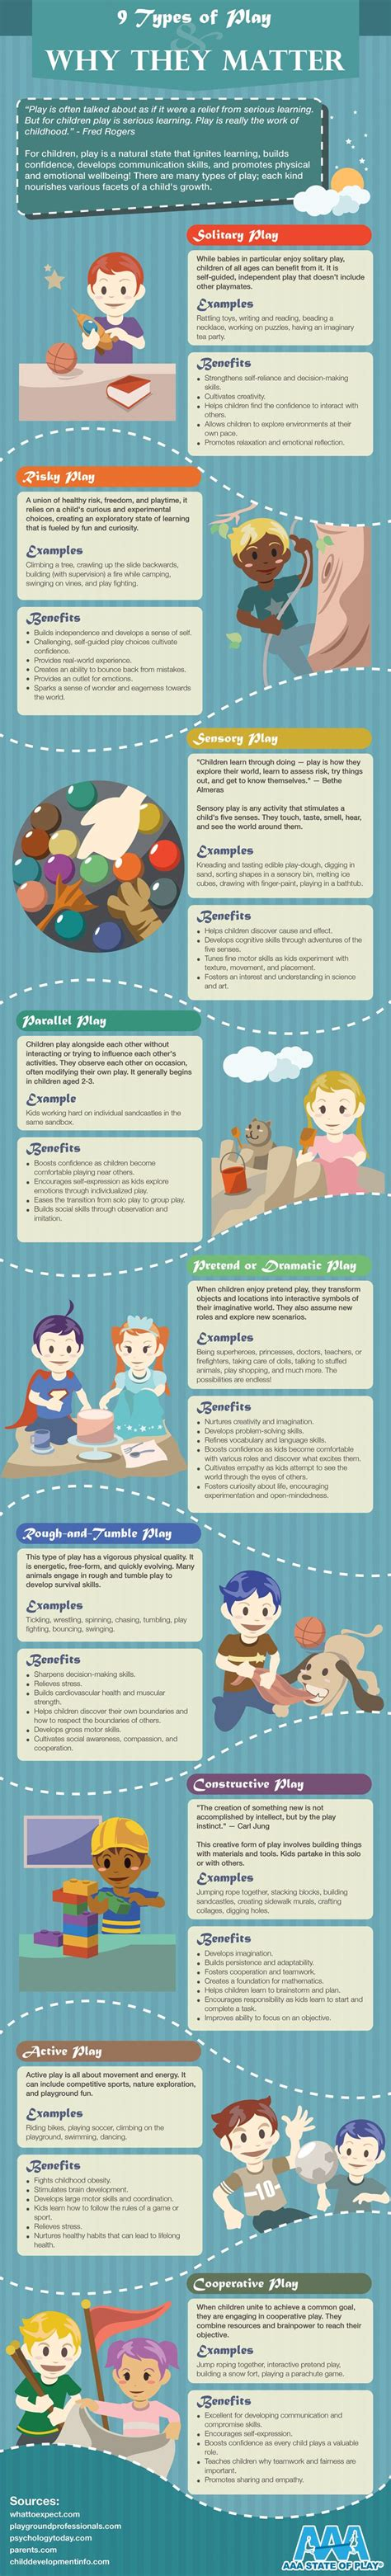 9 types of play and why they matter infographic 434 | 8b20ed563454e143cc37d1da5b3d9b07